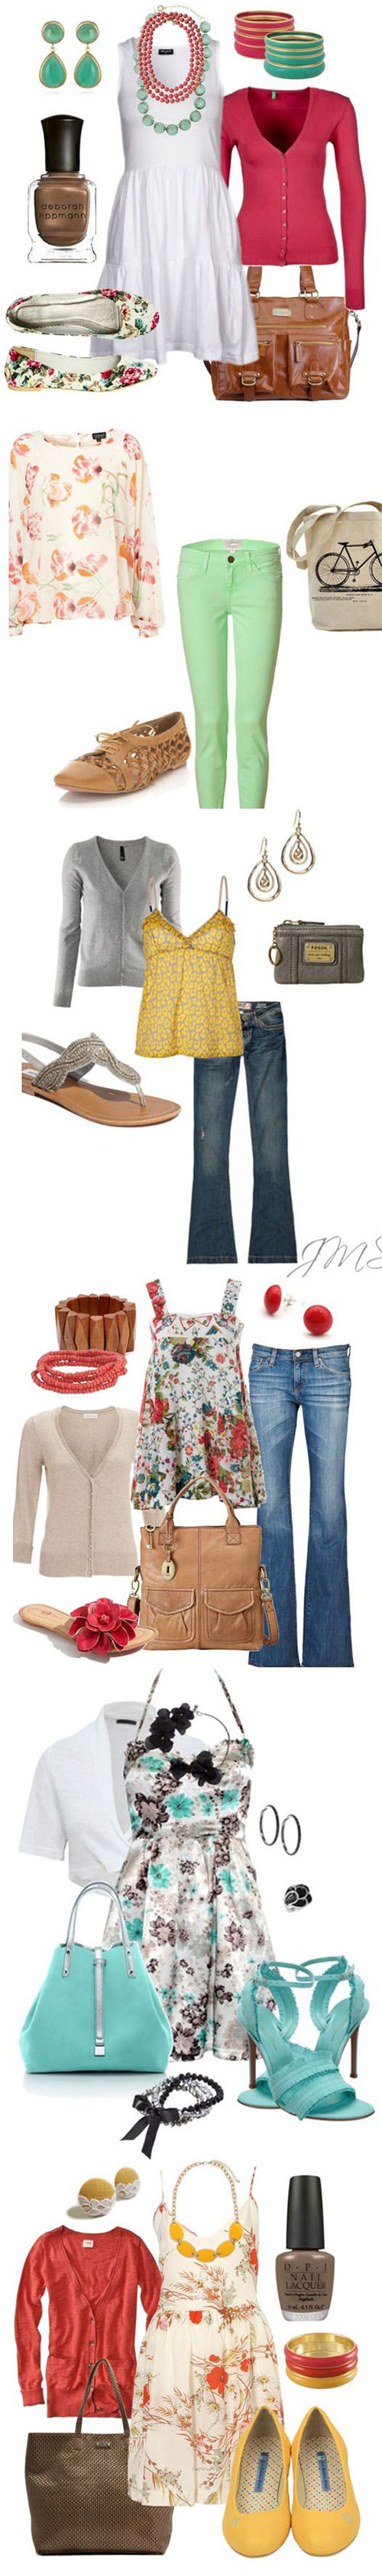 Polyvore-New-Upcoming-Casual-Spring-Clothing-Trends-2014-For-Girls-1